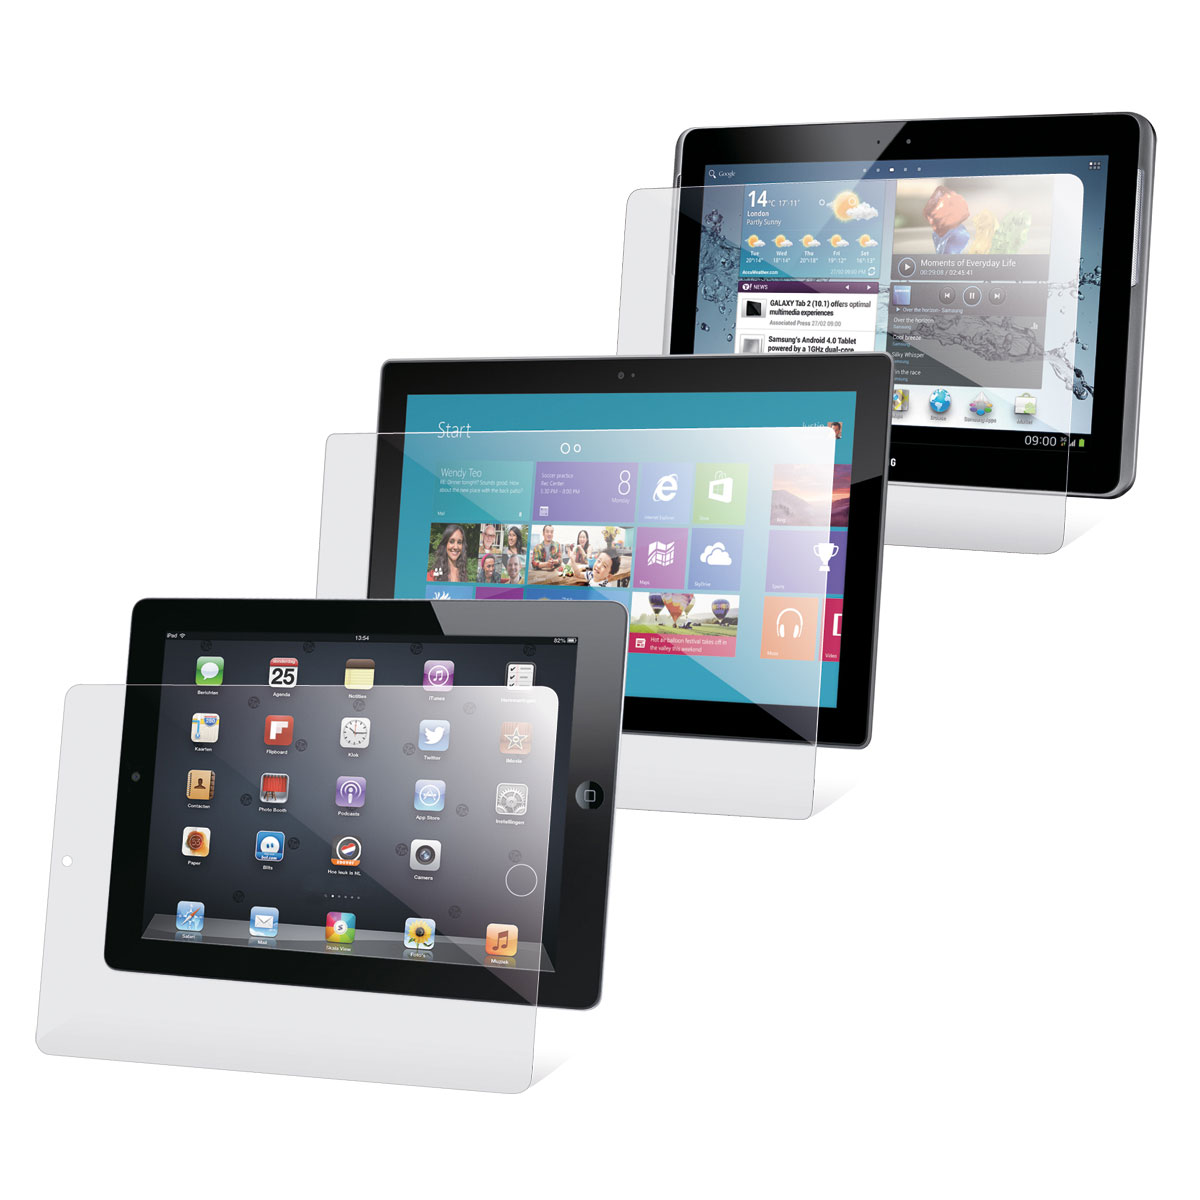 film de protection pour ipad air par 2 n a achat. Black Bedroom Furniture Sets. Home Design Ideas